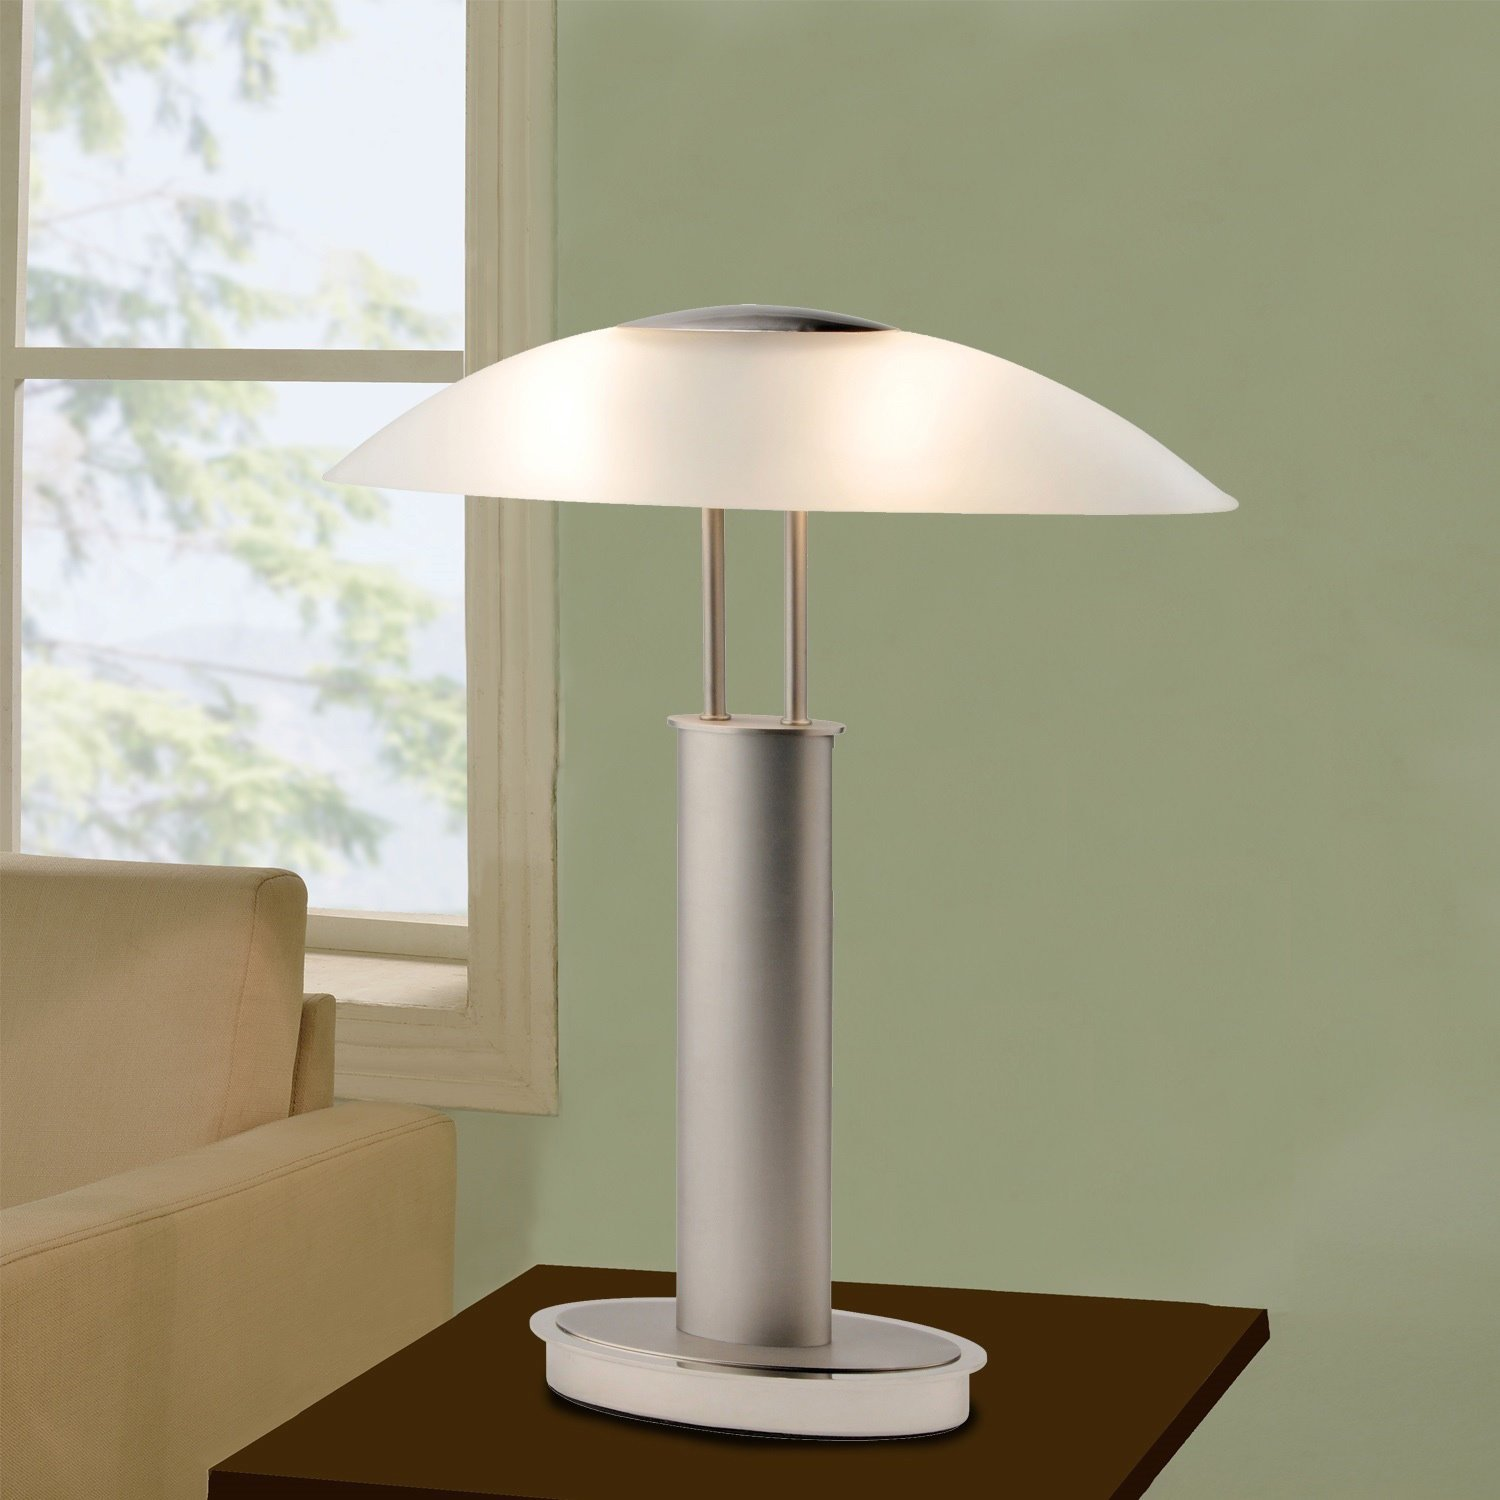 tone satin nickel led touch table lamp with oval canoe and artiva usa avalon plus modern frosted glass shade switch cylinder accent free shipping today metal mirror nautical